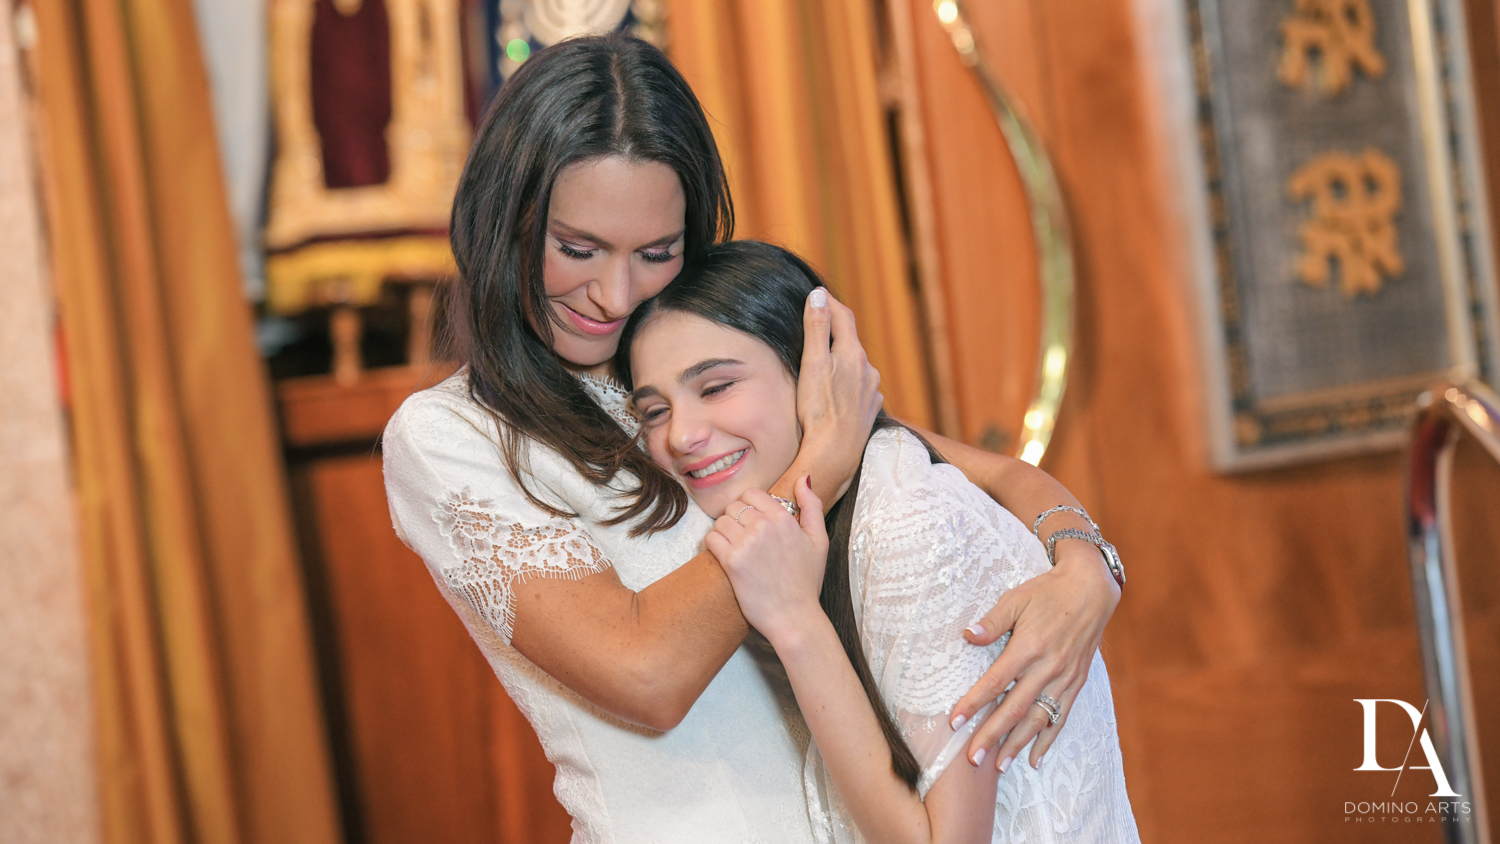 natural portraits at Luxury Celebrity Bat Mitzvah at Four Seasons Hotel Miami by Domino Arts Photography